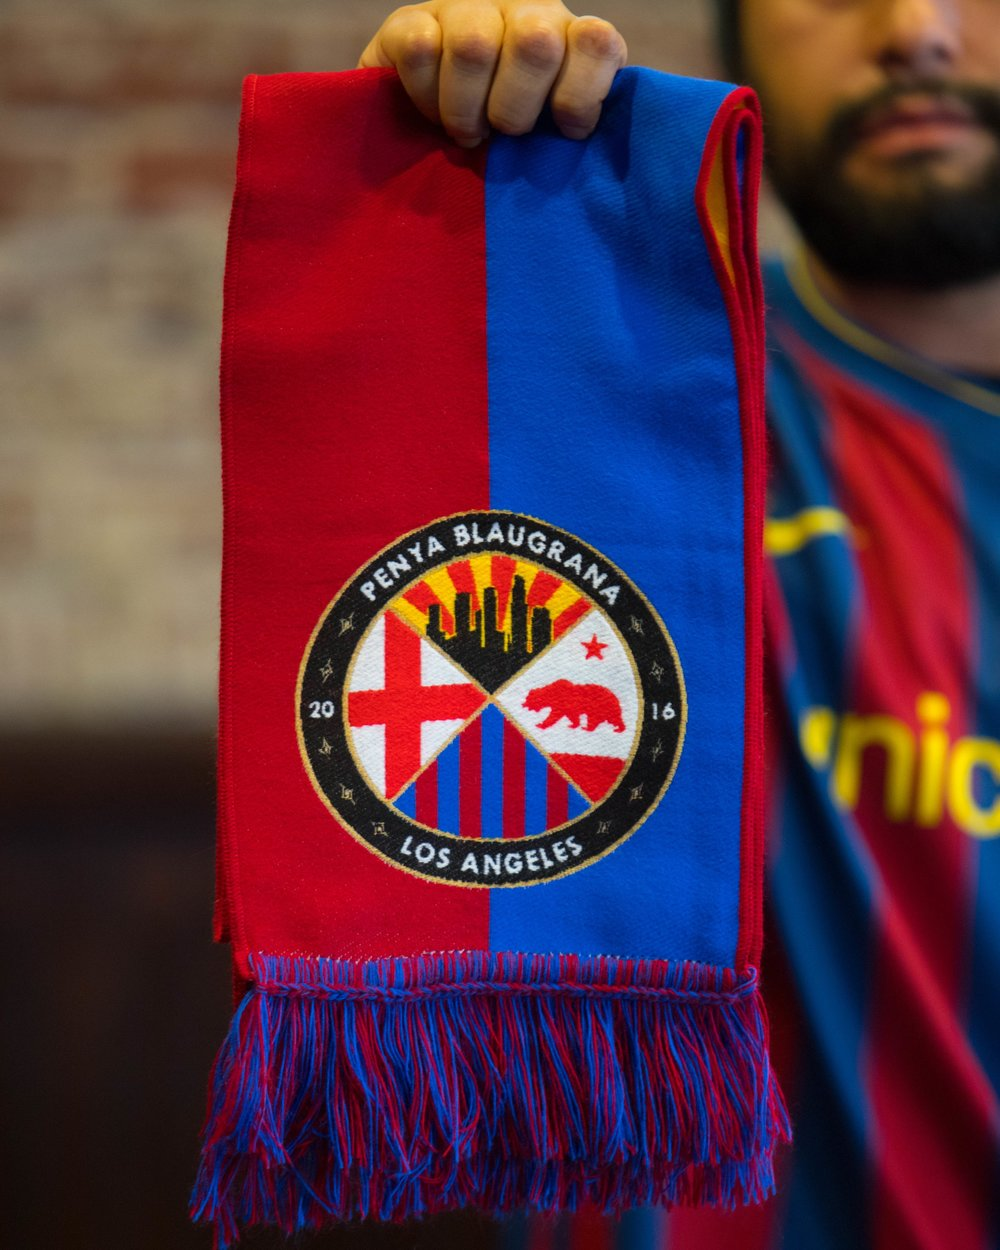 2018/19 Scarf - Our new scarf is here! Represent your Penya with pride!$35Limited Quantities available starting 2/10. In person pickup only.